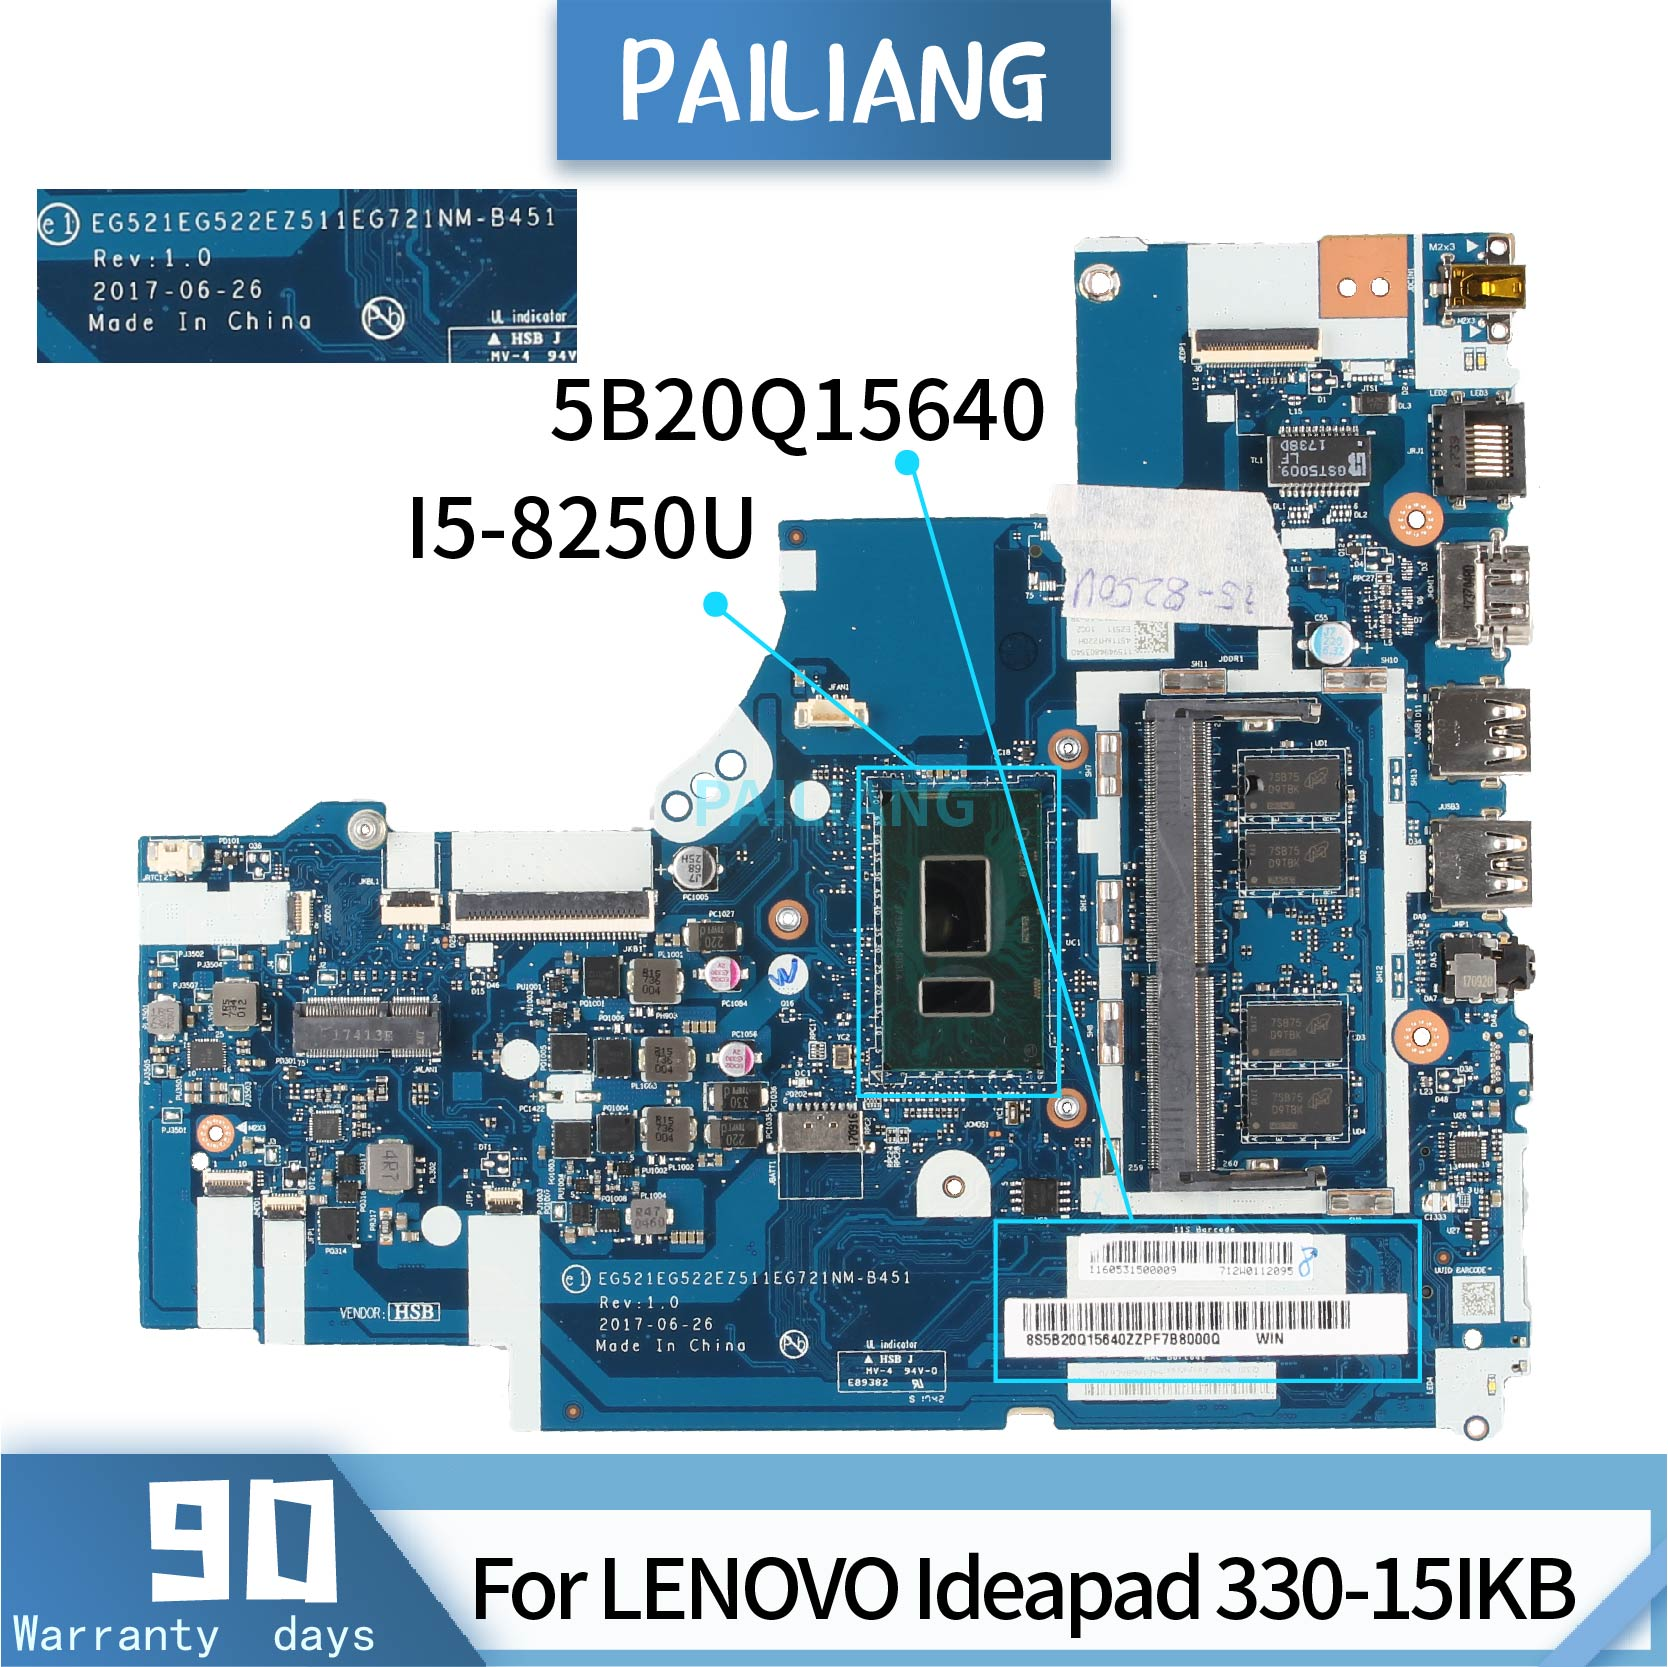 PAILIANG Laptop <font><b>motherboard</b></font> For <font><b>LENOVO</b></font> <font><b>Ideapad</b></font> <font><b>330</b></font>-15IKB Mainboard 5B20Q15640 NM-B451 SR3LA I5-8250U TESTED DDR3 image